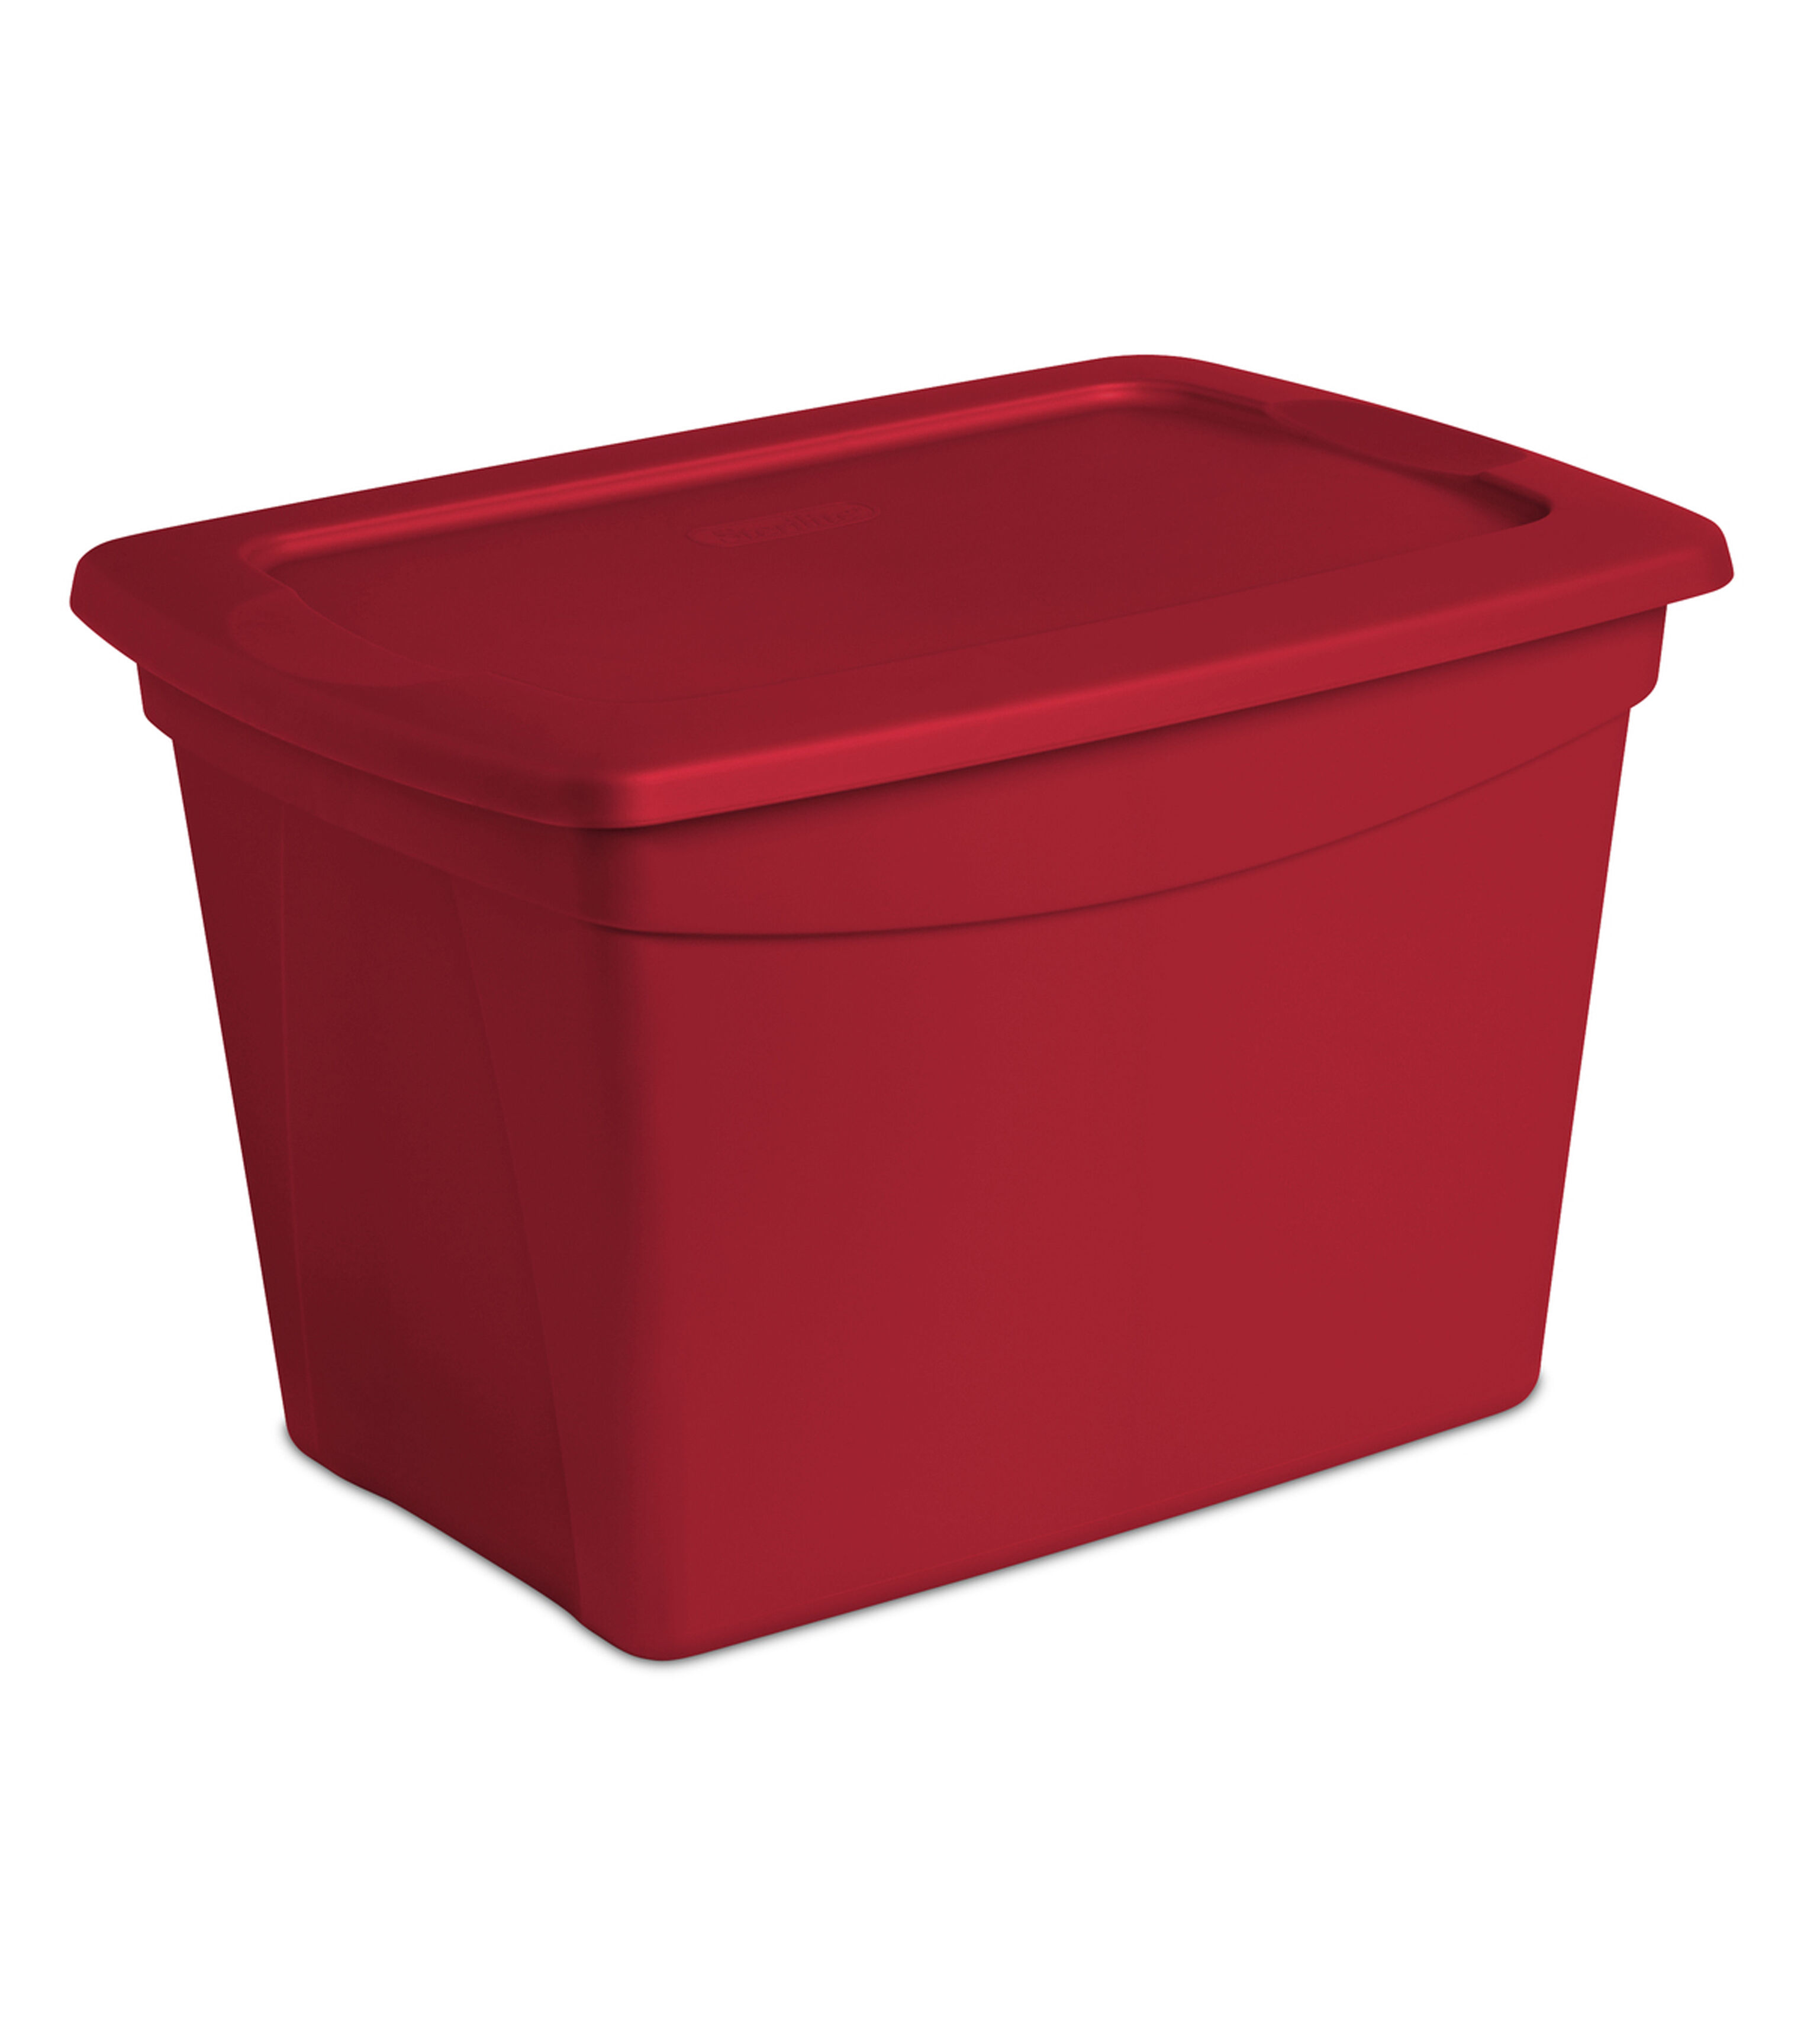 Holiday Storage Storage Bins Containers JOANN